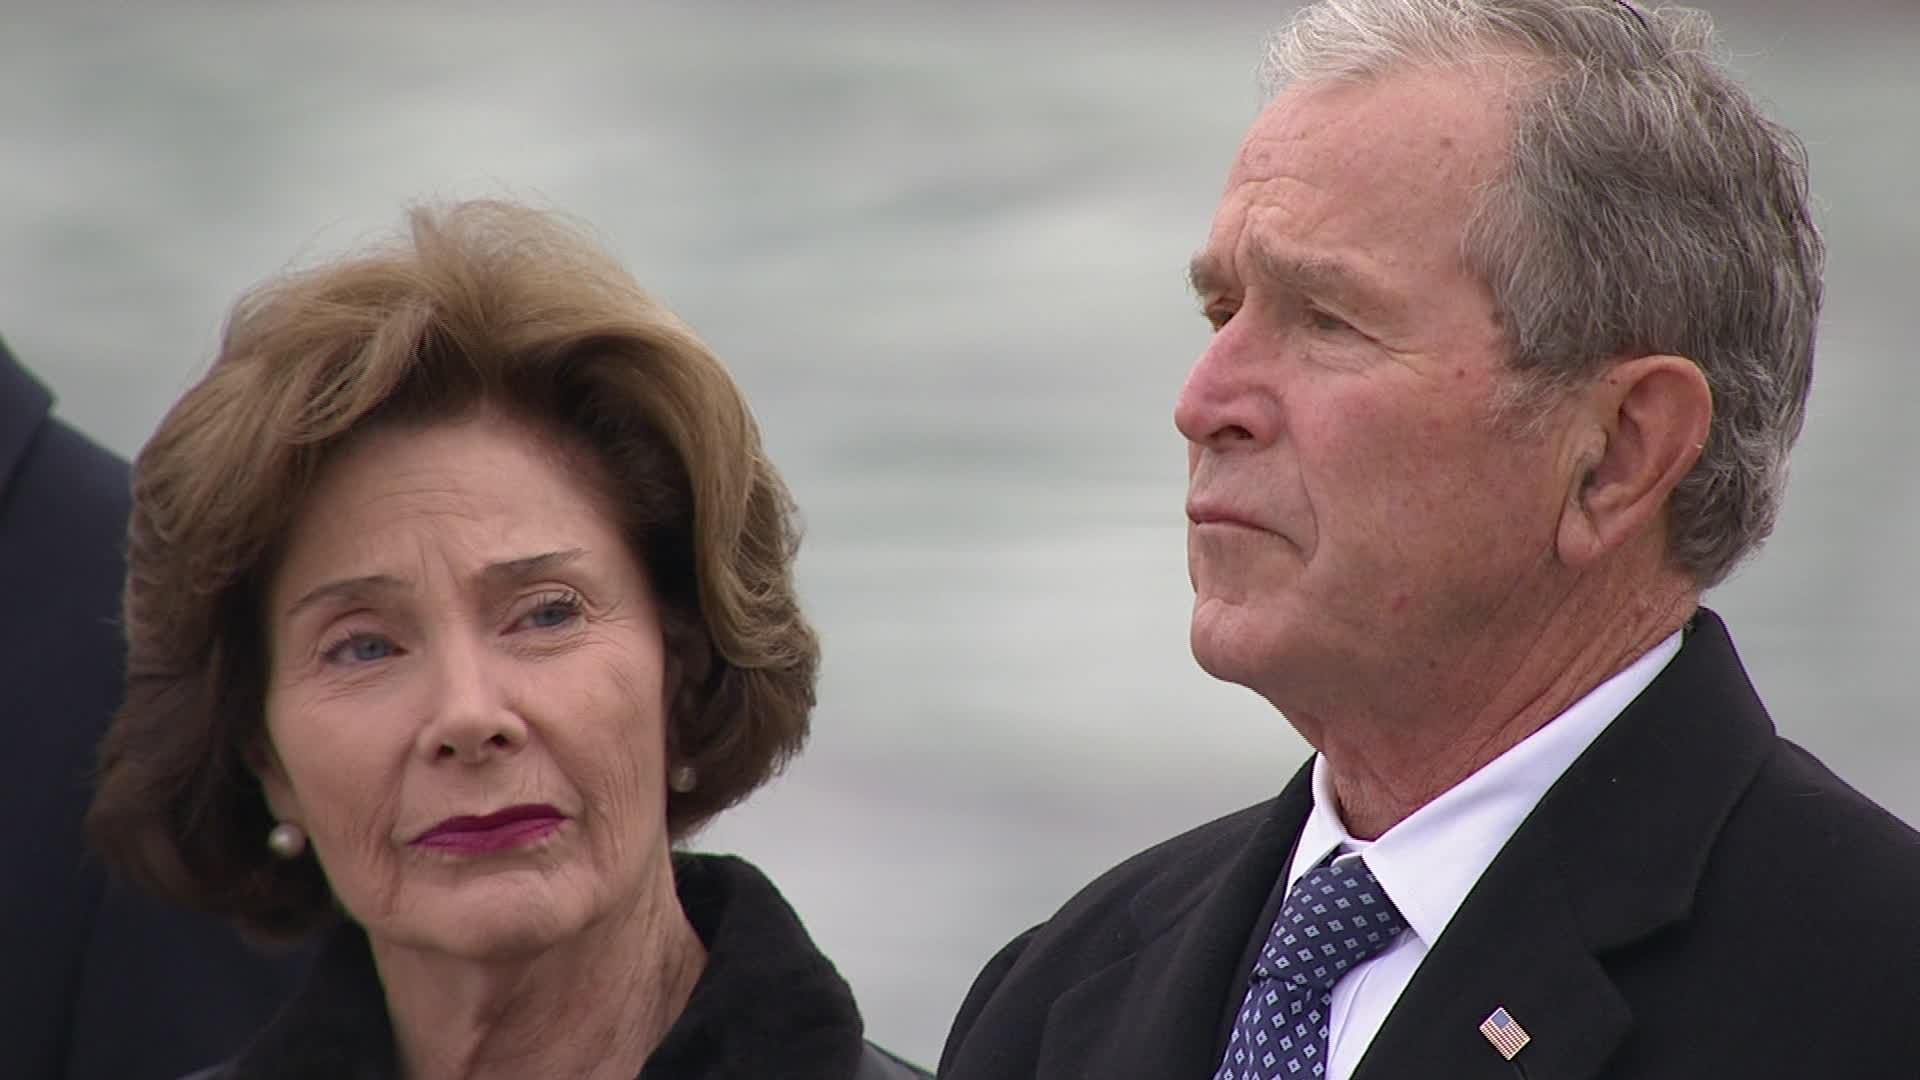 Nation says goodbye to Bush: 'To us, he was close to perfect'